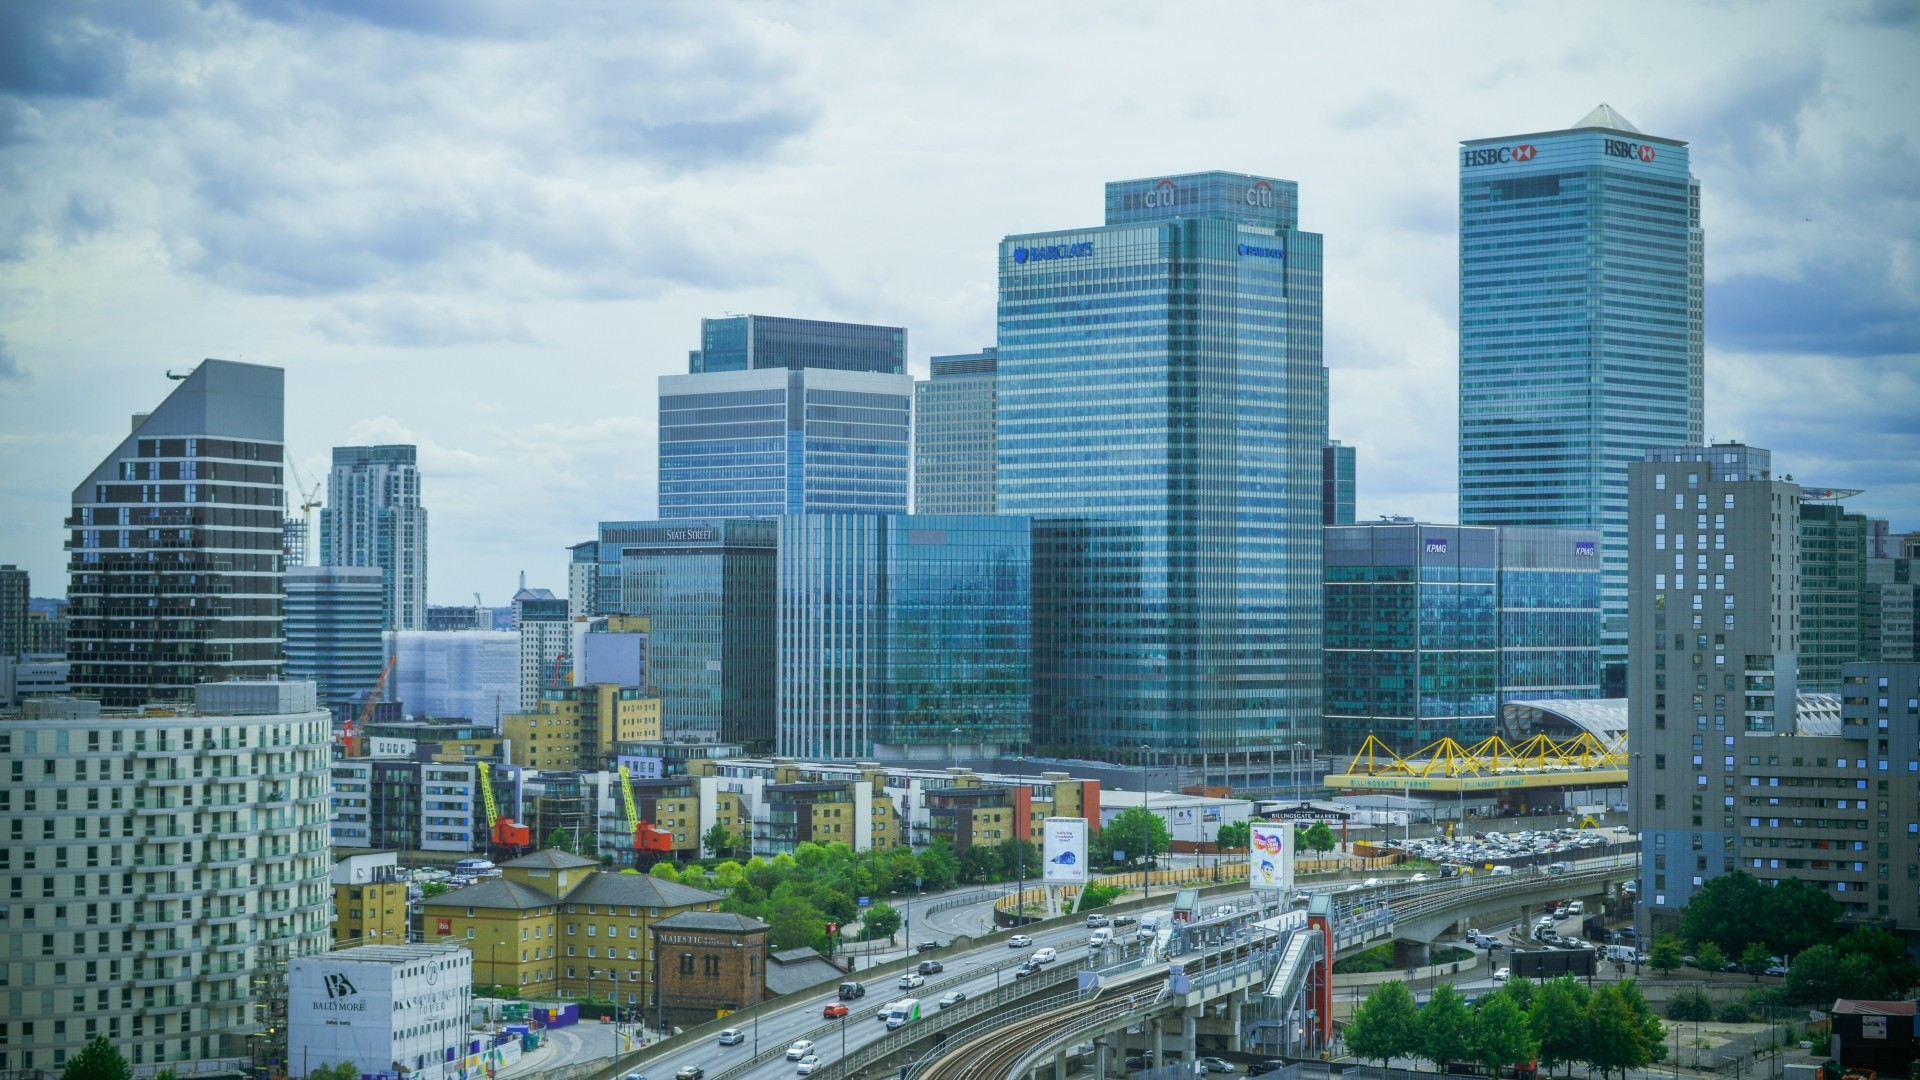 Res: 1920x1080, Download now full hd wallpaper london business center overcast ...